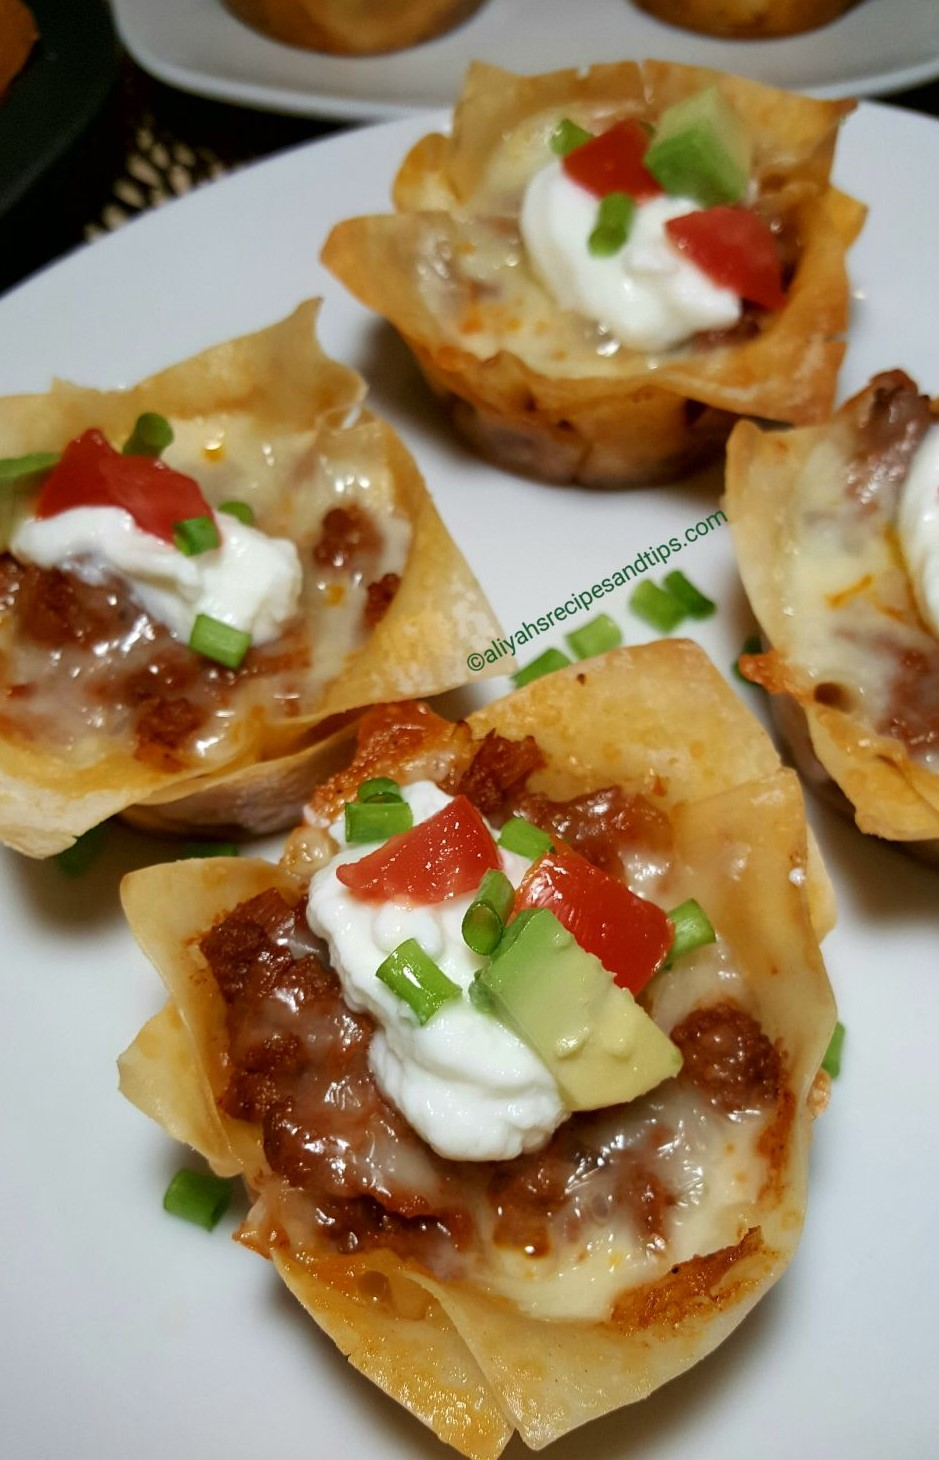 taco cups, wonton, easy, muffins, tasty, keto, party, appertizer, chicken, ground beef, tortilla, double layers, ayered. phyllo, crunchy, wonton wrapper, cheese, turkey, ground beef, baked, tacos, taco tuesday, tacos tuesday, taco cups, taco cups recipe, crunchy taco cups,easy taco cups recipe, easy taco cups, wonton taco cups, tortilla taco cups, mini taco cups